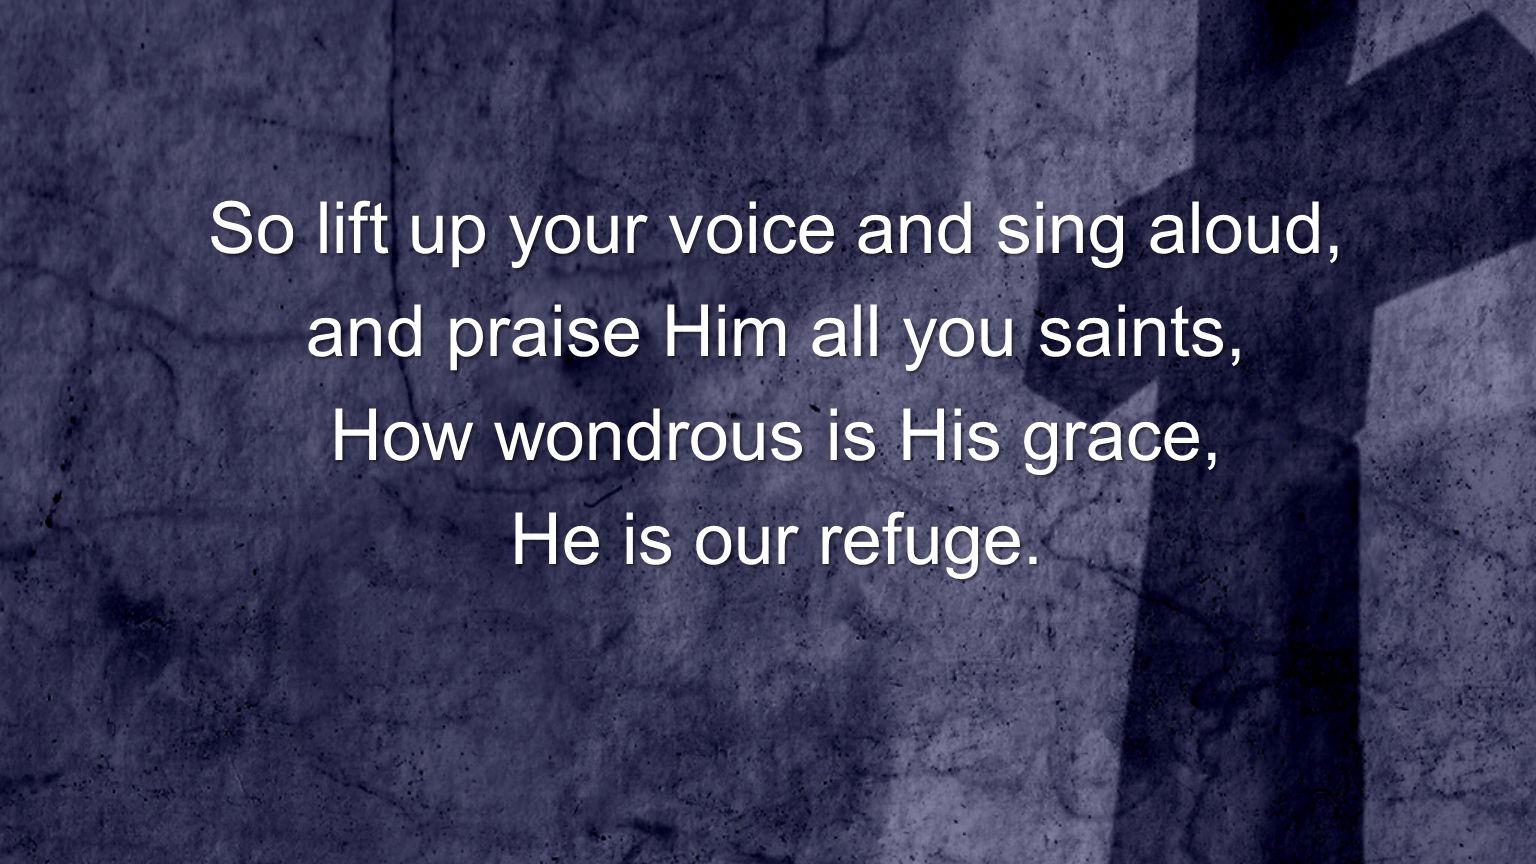 So lift up your voice and sing aloud, and praise Him all you saints,